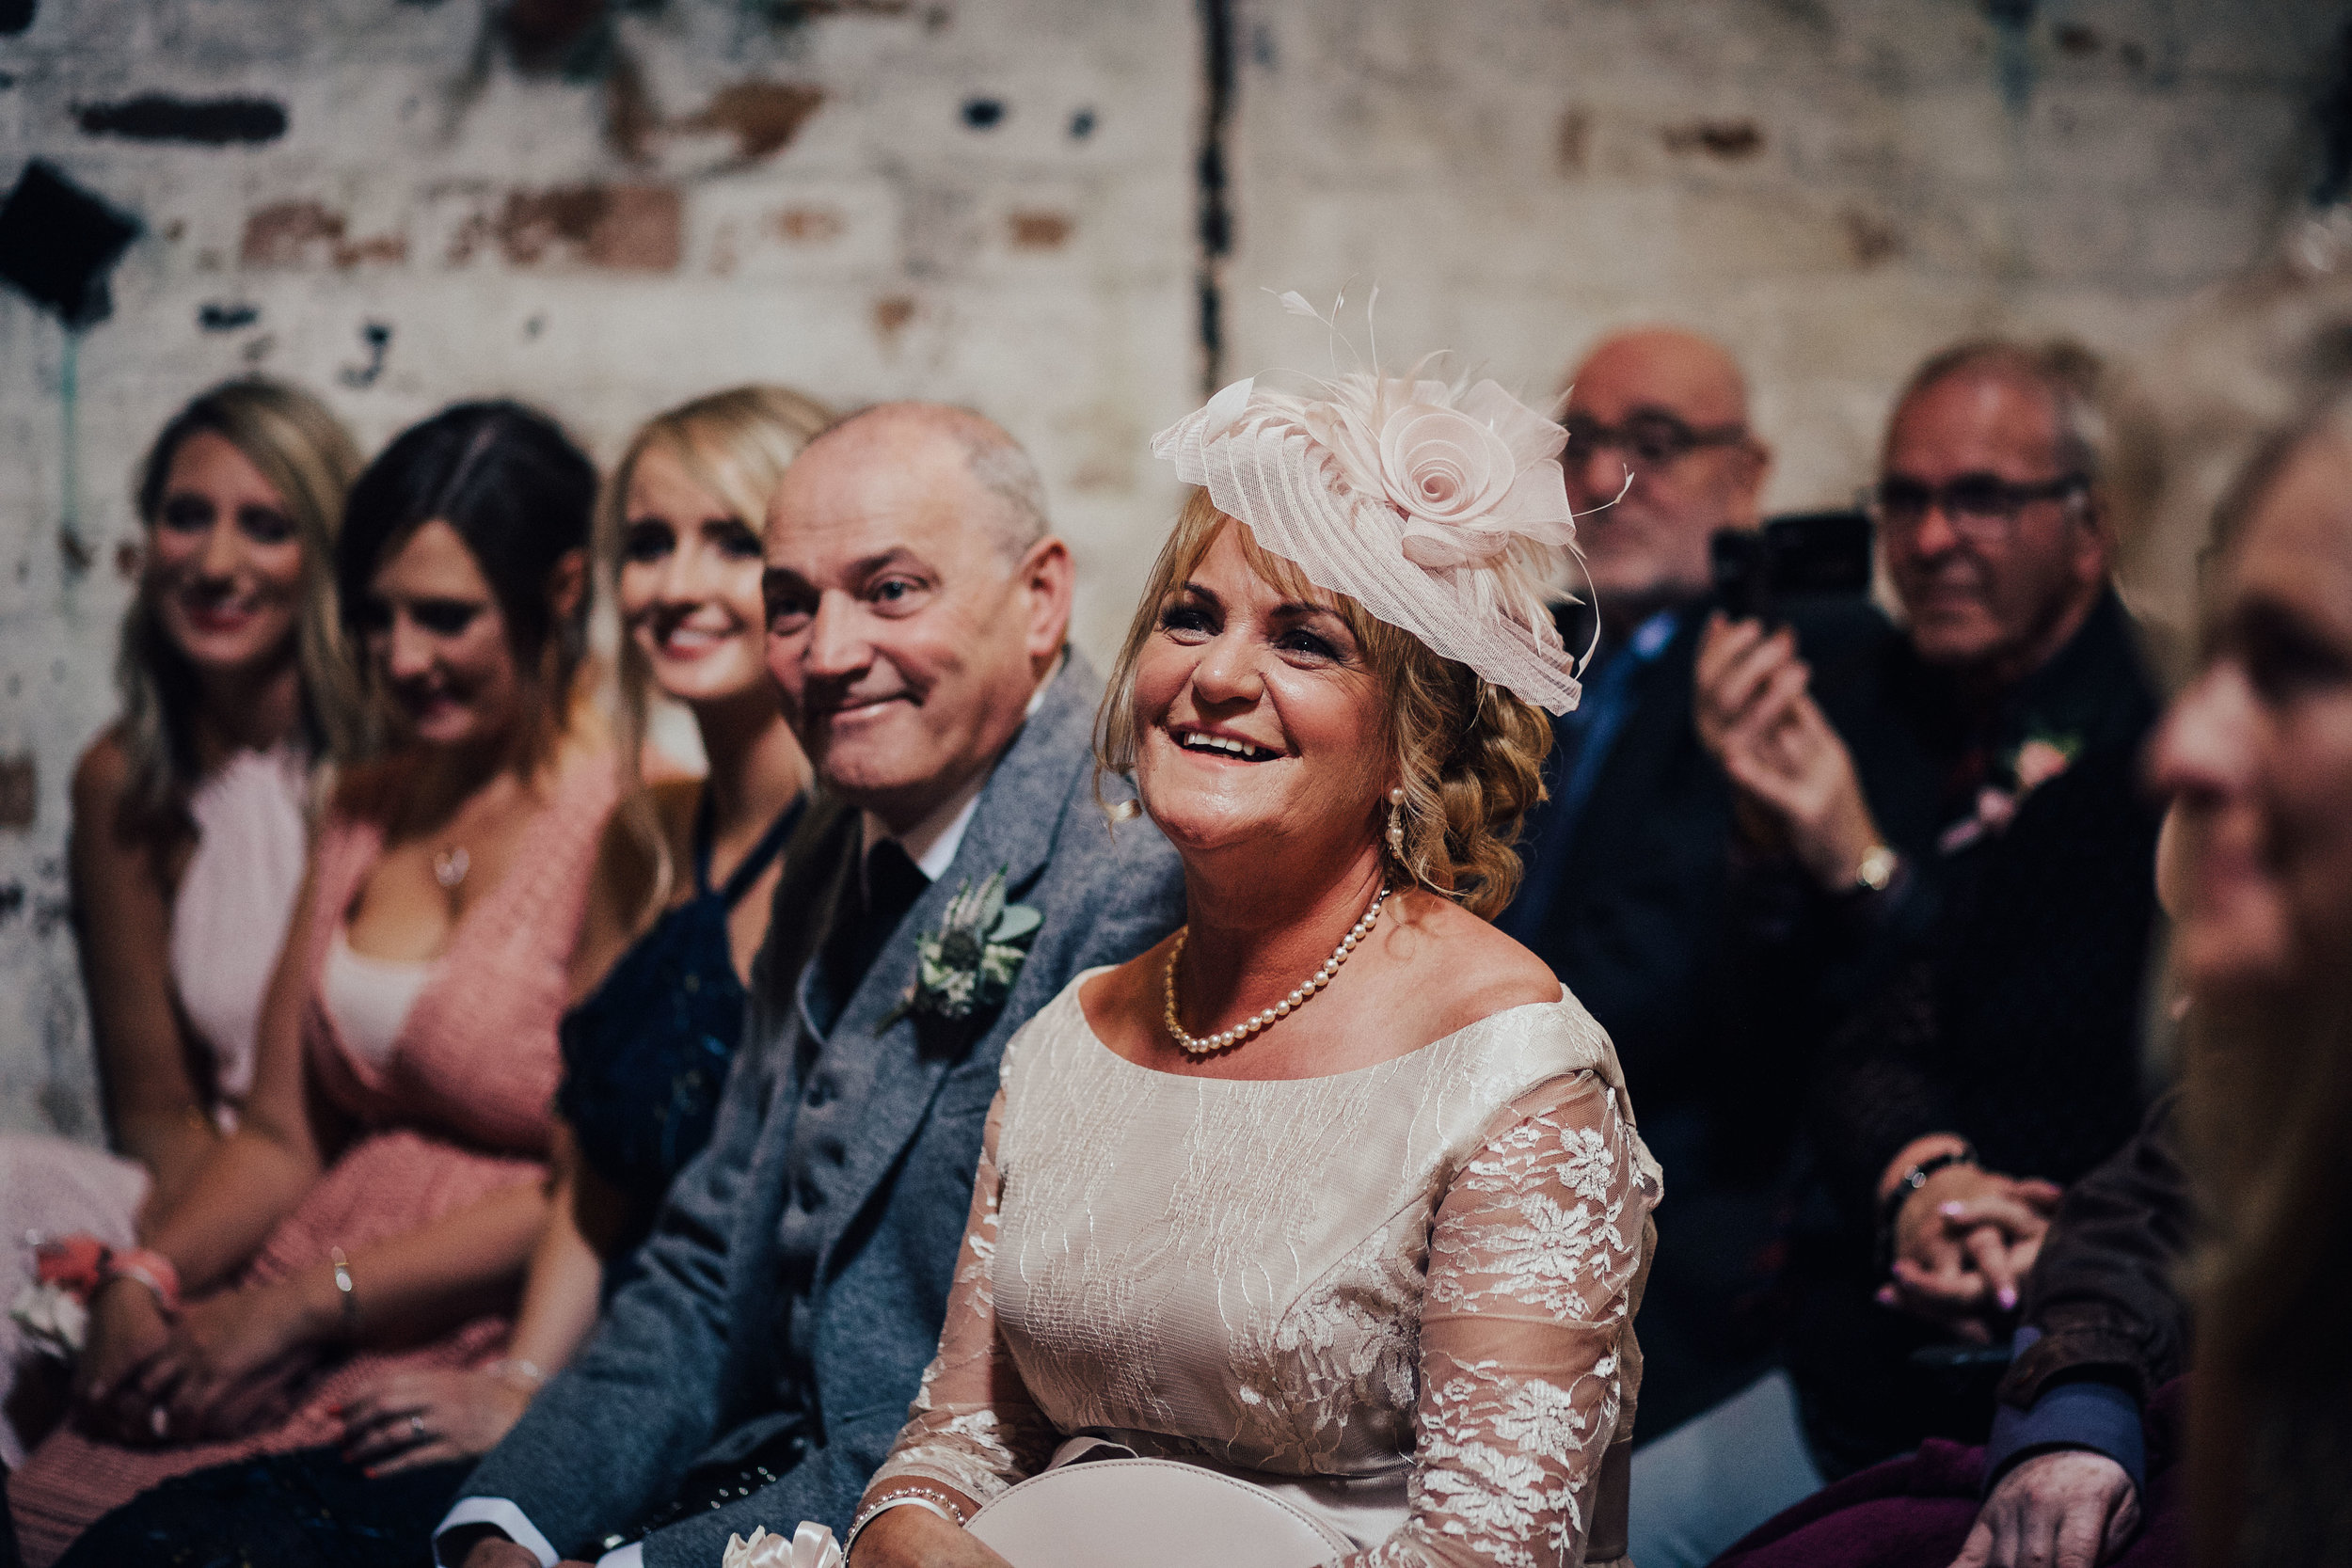 BYRE_AT_INCHYRA_WEDDING_PHOTOGRAPHER_PJ_PHILLIPS_PHOTOGRAPHY_KAYLEIGH_ANDREW_81.jpg